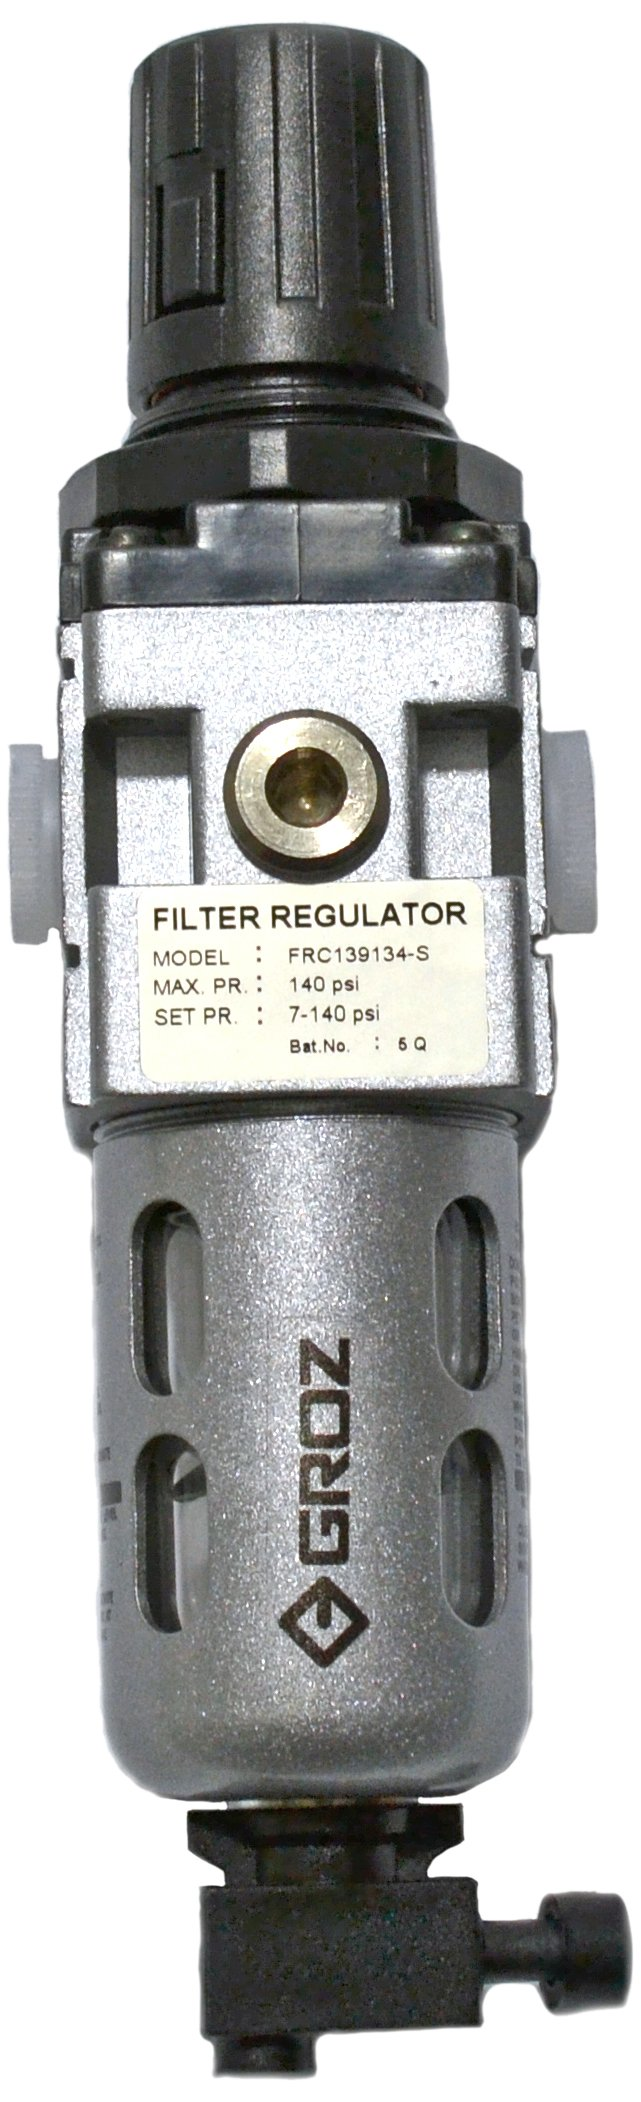 Groz 60351 filter -Regulator Combinationwith Polyc (Pack of 2)